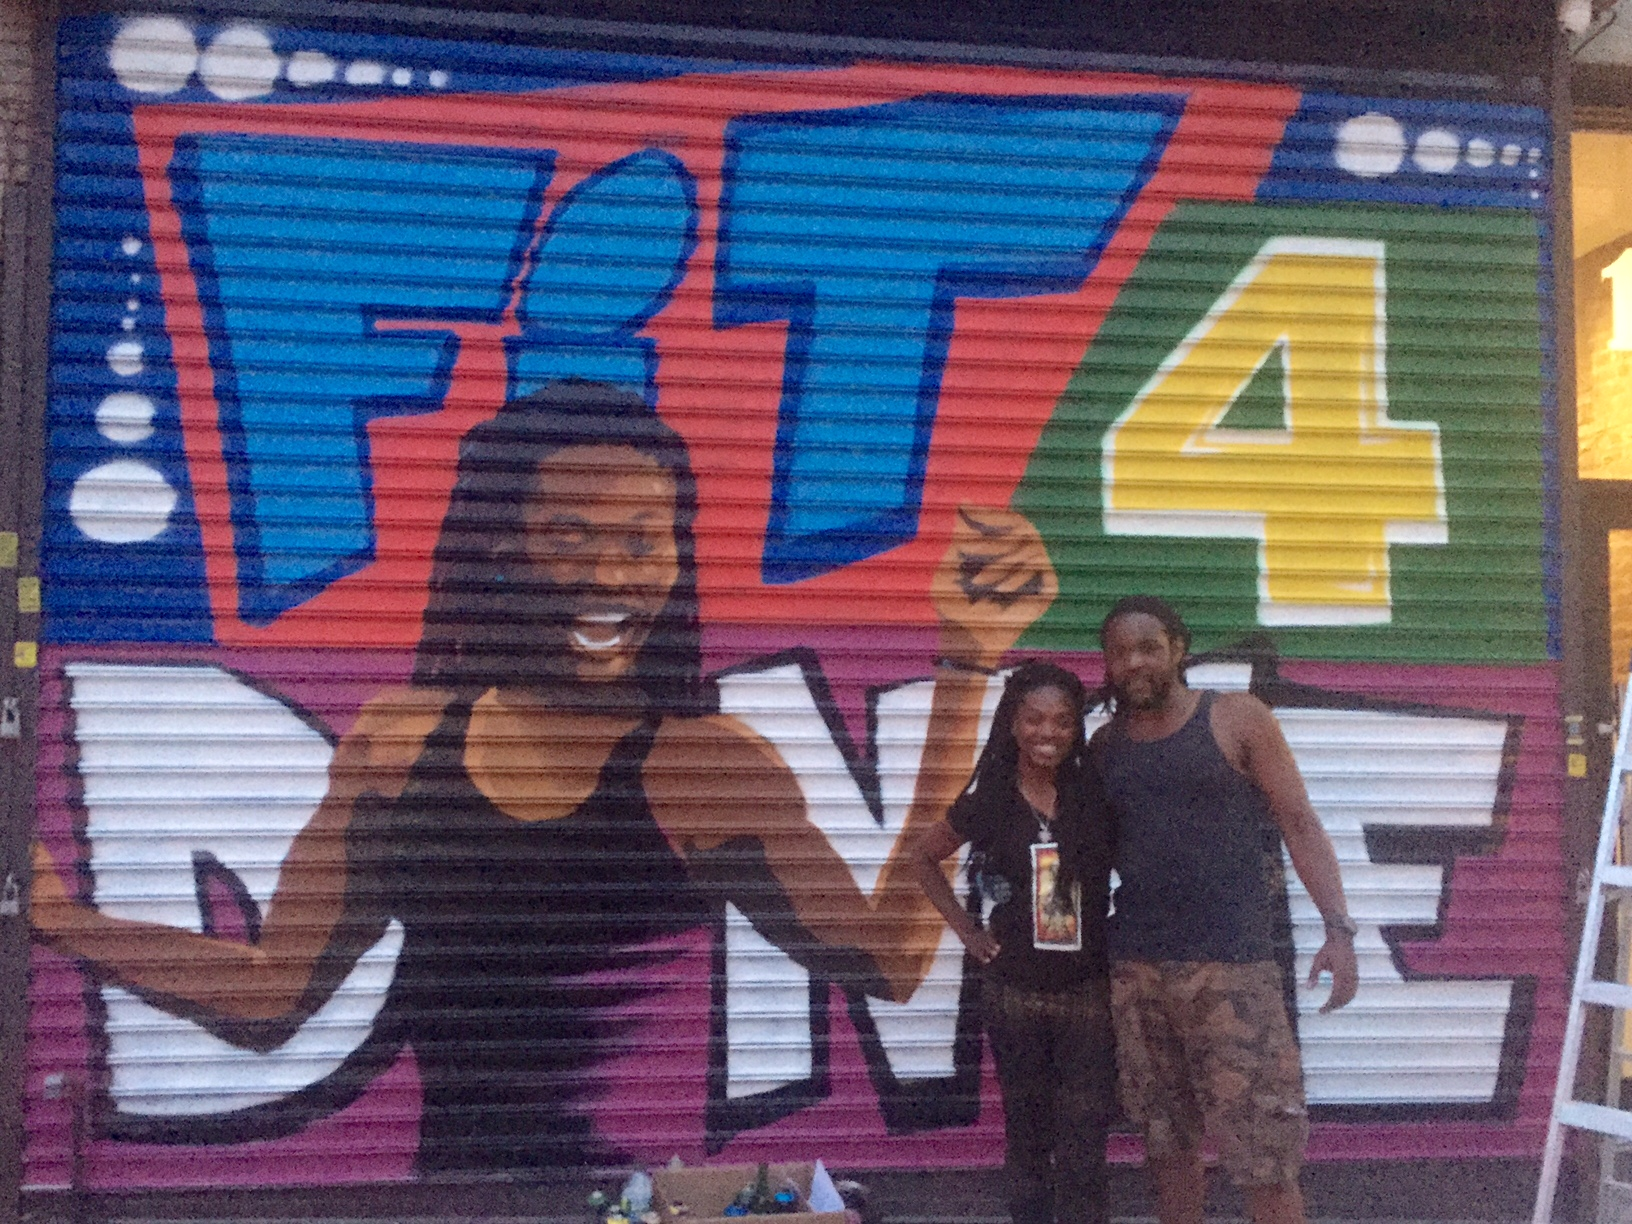 Fit4Dance Mural by Vincent Ballentine